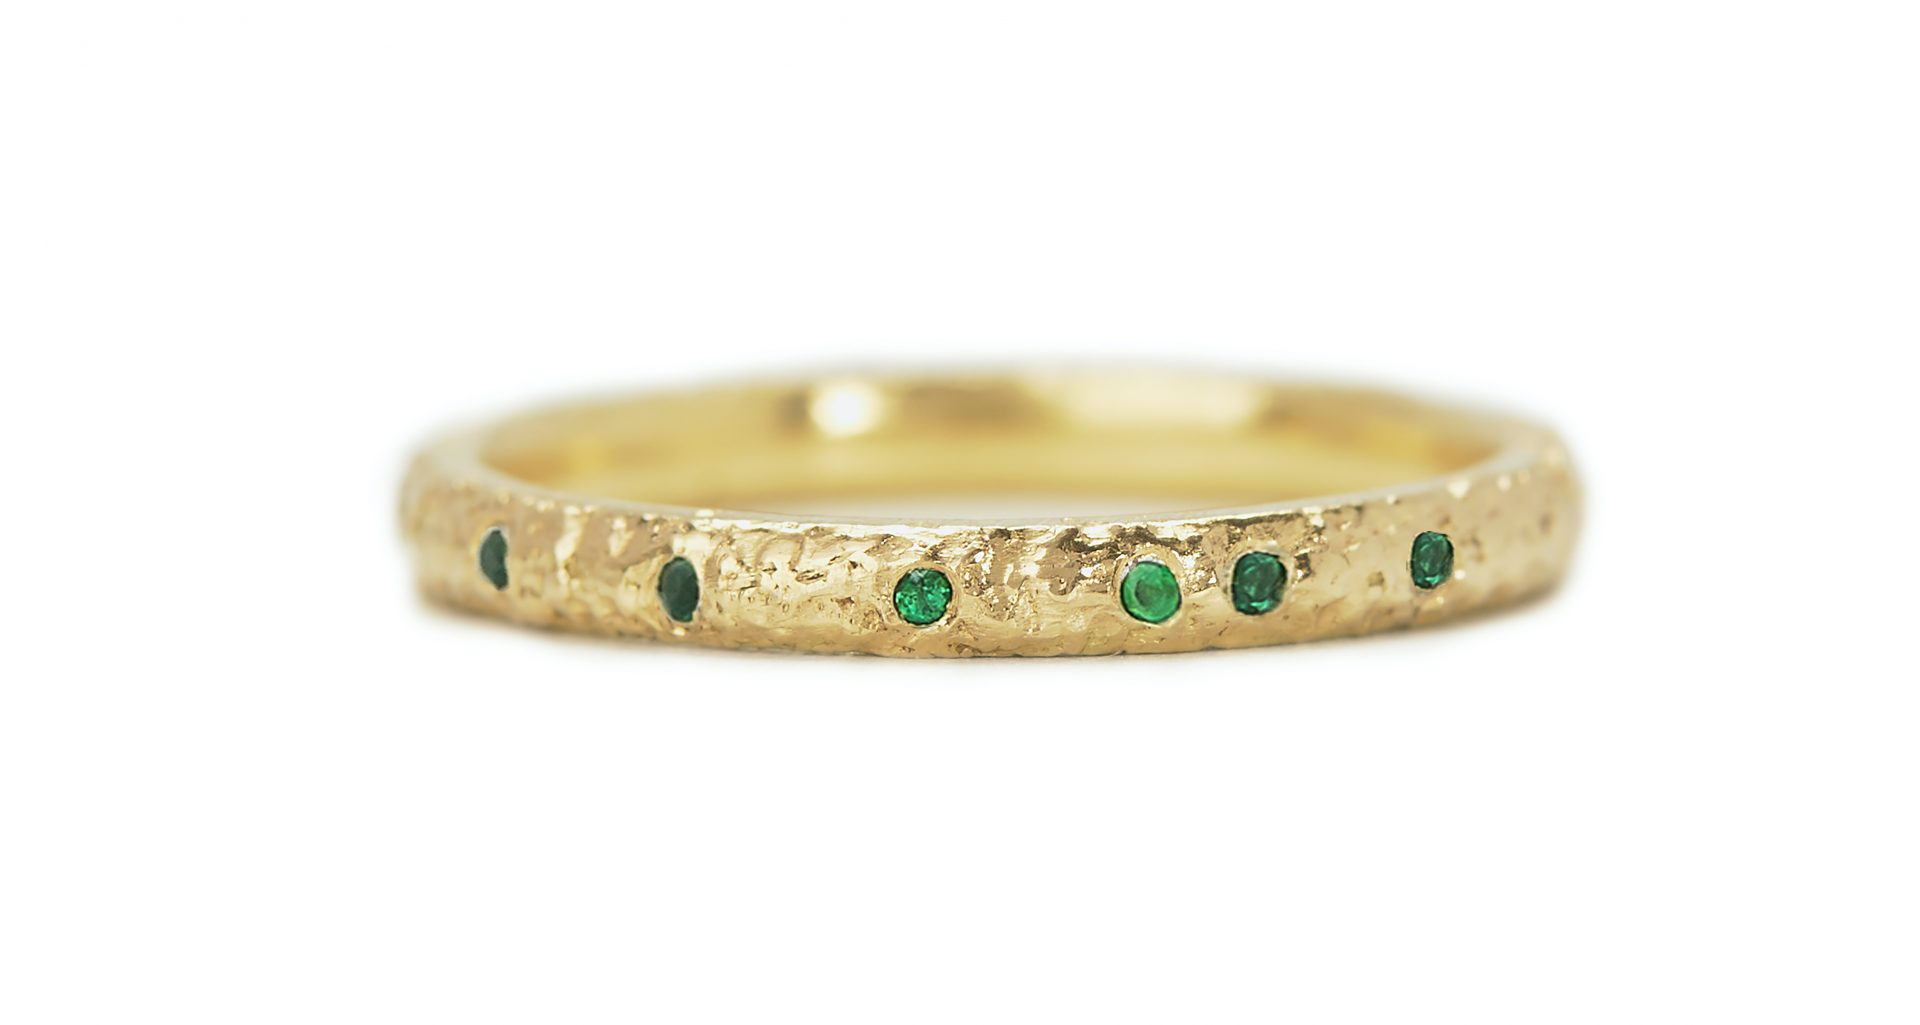 Textured Gold, Emerald Scattered Eternity Ring